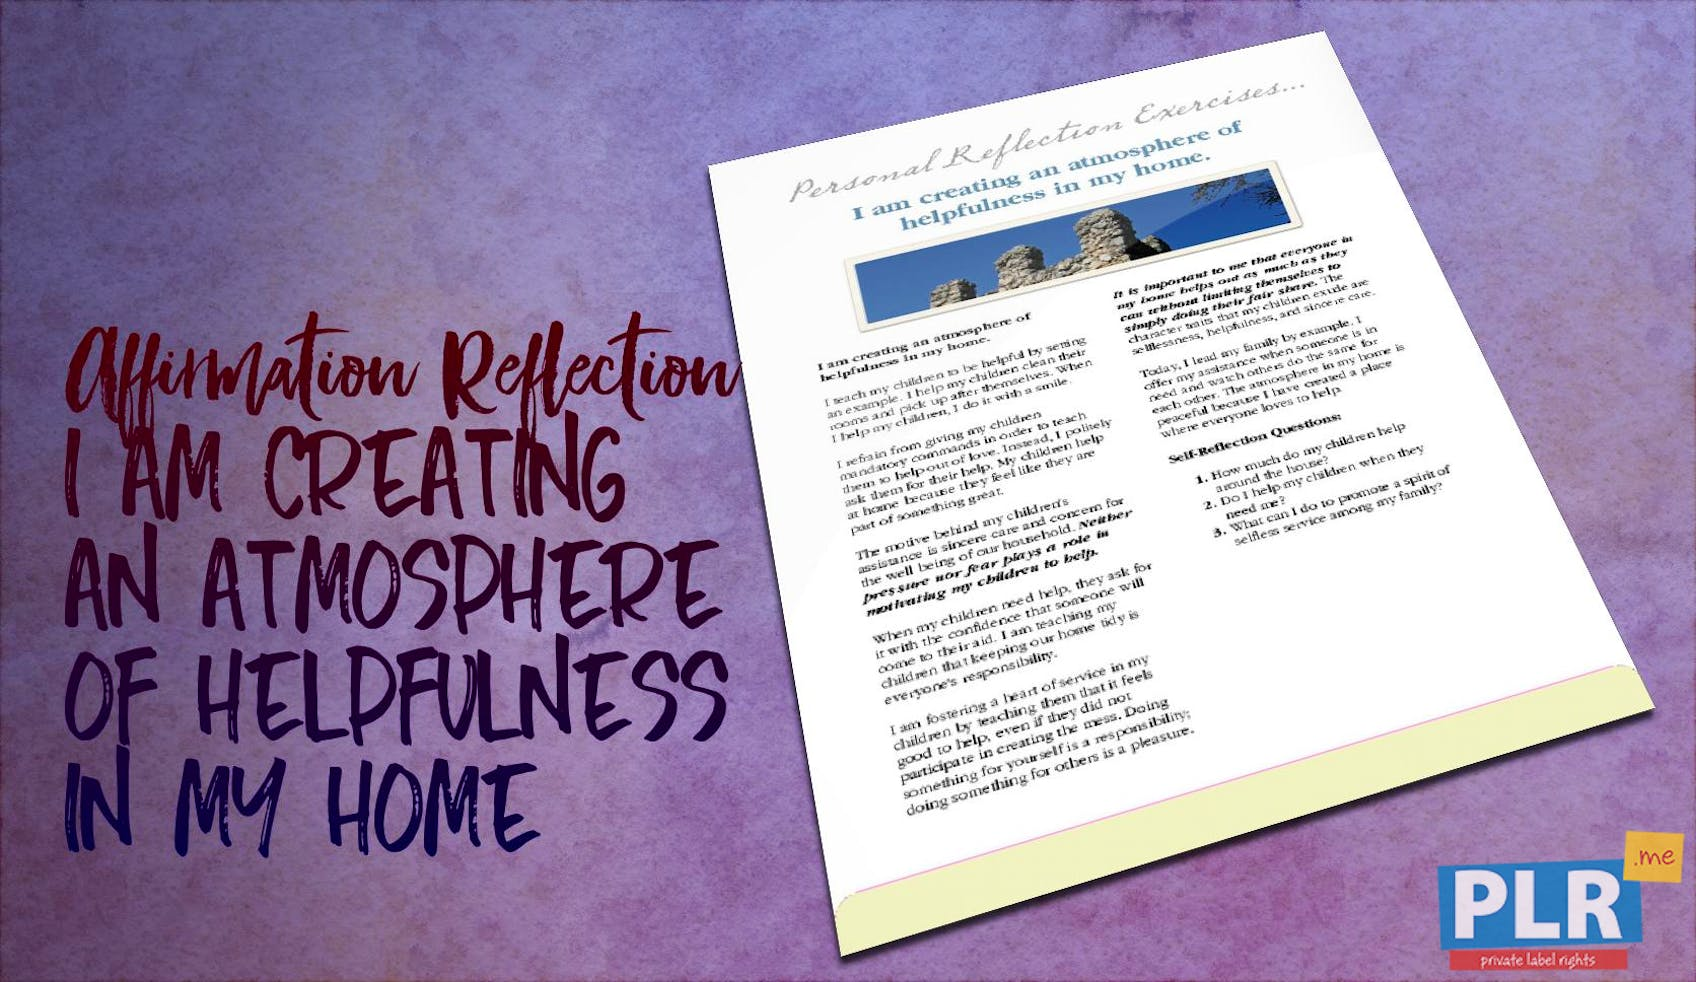 I Am Creating An Atmosphere Of Helpfulness In My Home